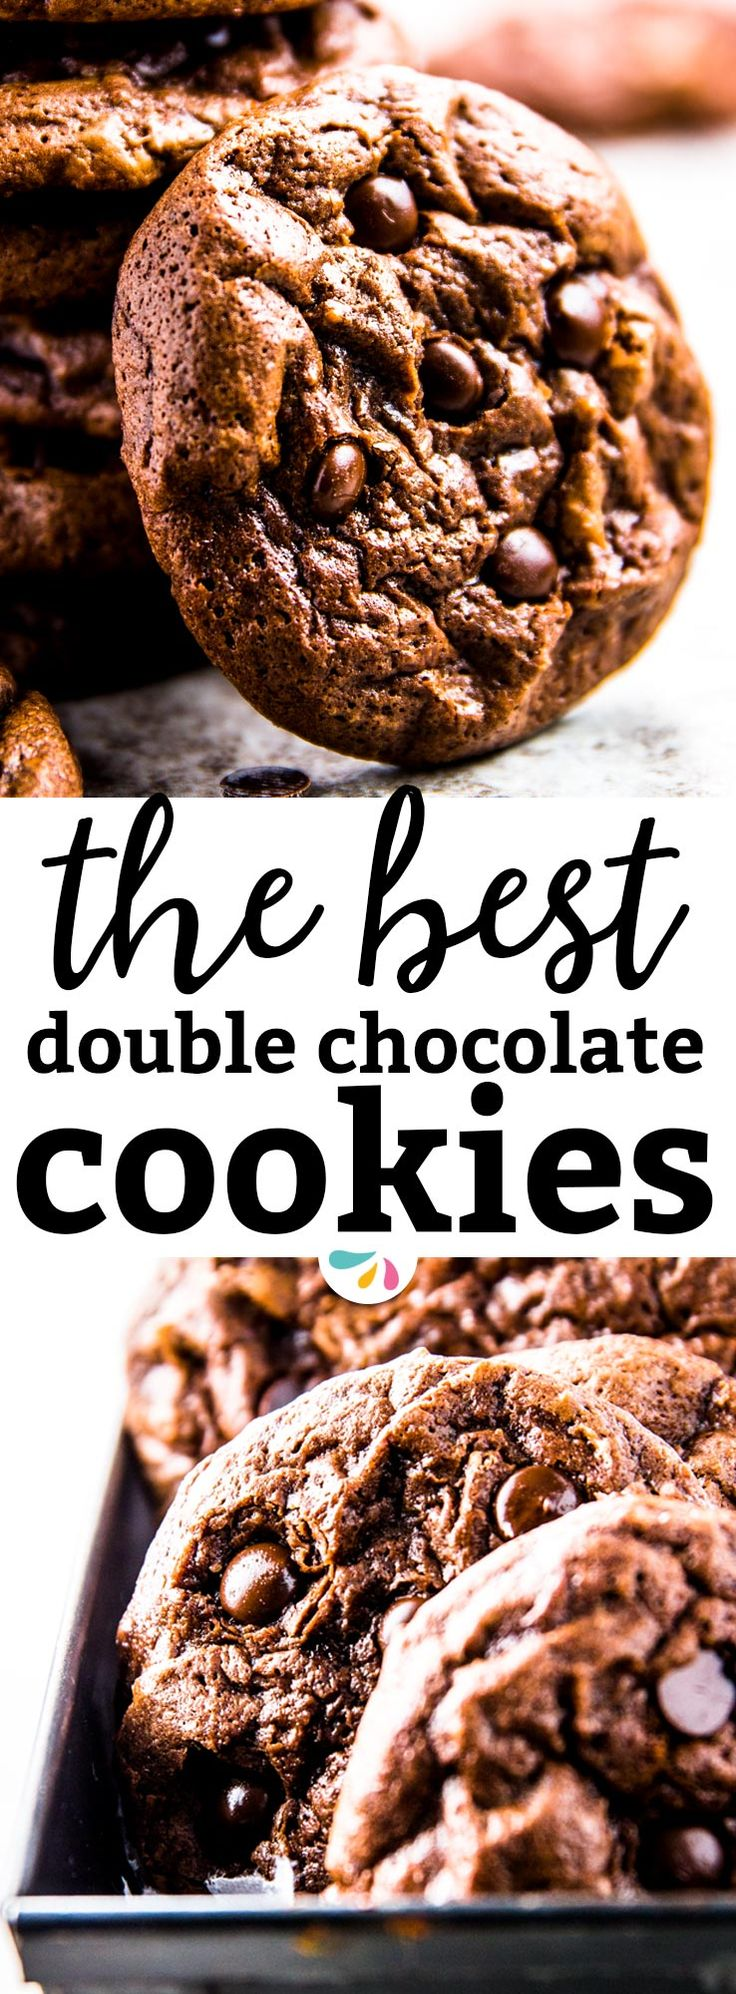 These are the best Double Chocolate Cookies you will ever eat. Fudgey, gooey and absolutely never cakey - delicious! The cookie dough is very easy to make with a special melt and mix technique that guarantees the fudgiest cookie possible. Try them today - they won't disappoint! And they're the perfect treat for Valentine's Day - even kids can make them! | #valentinesday #chocolate #cookies #baking #recipe #easyrecipes #recipes